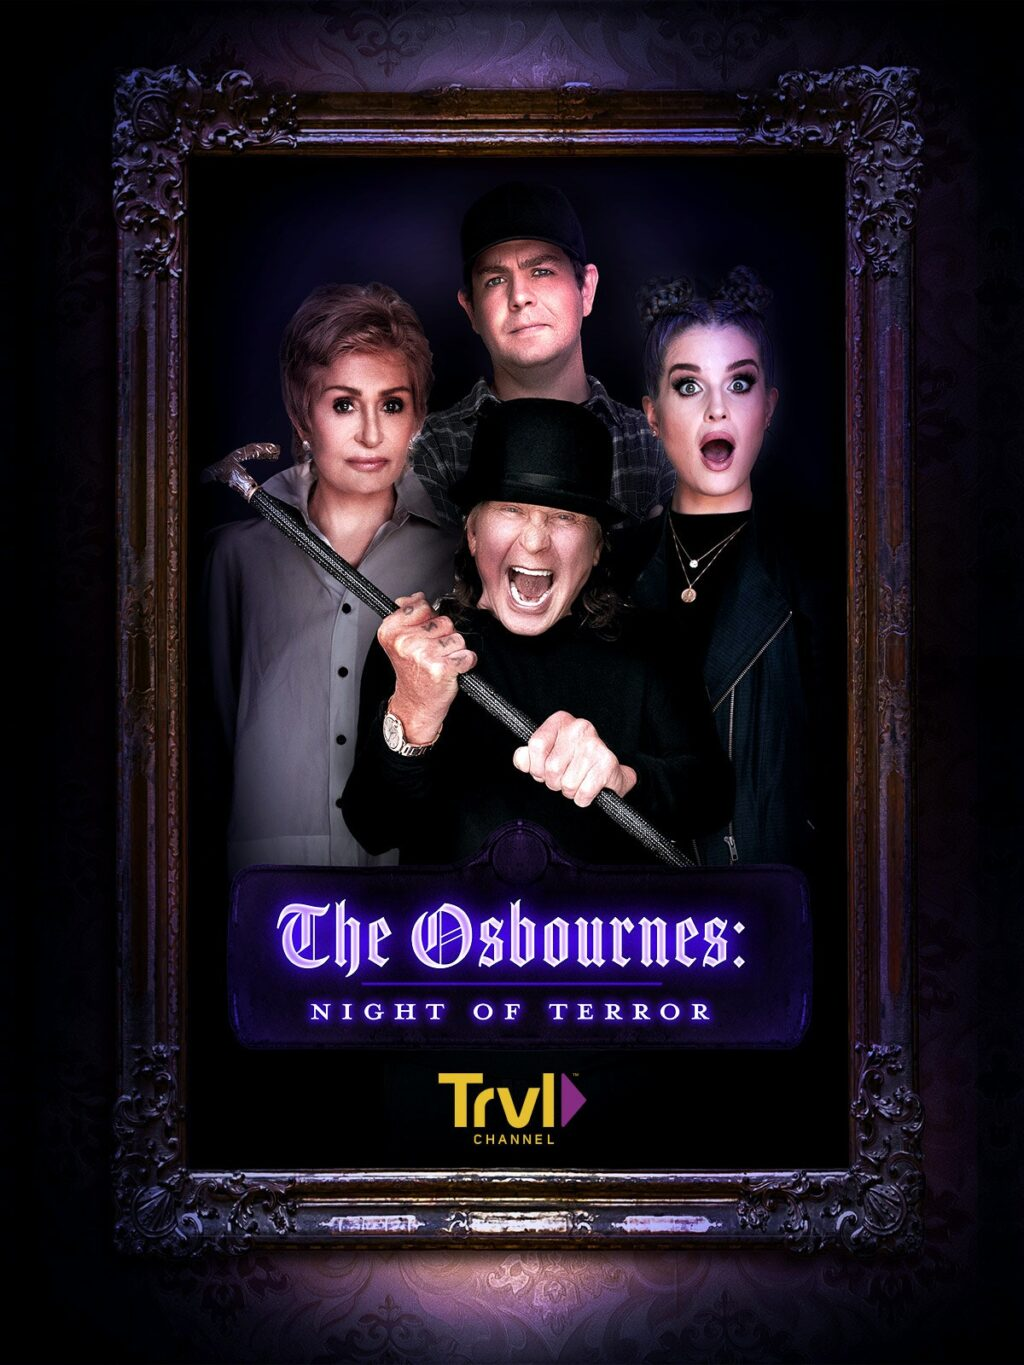 TheOsbournes NightofTerror 1024x1365 - It's An Osbourne Family Ghost Hunt! 2-Hour Travel Channel Special Airs October 30th